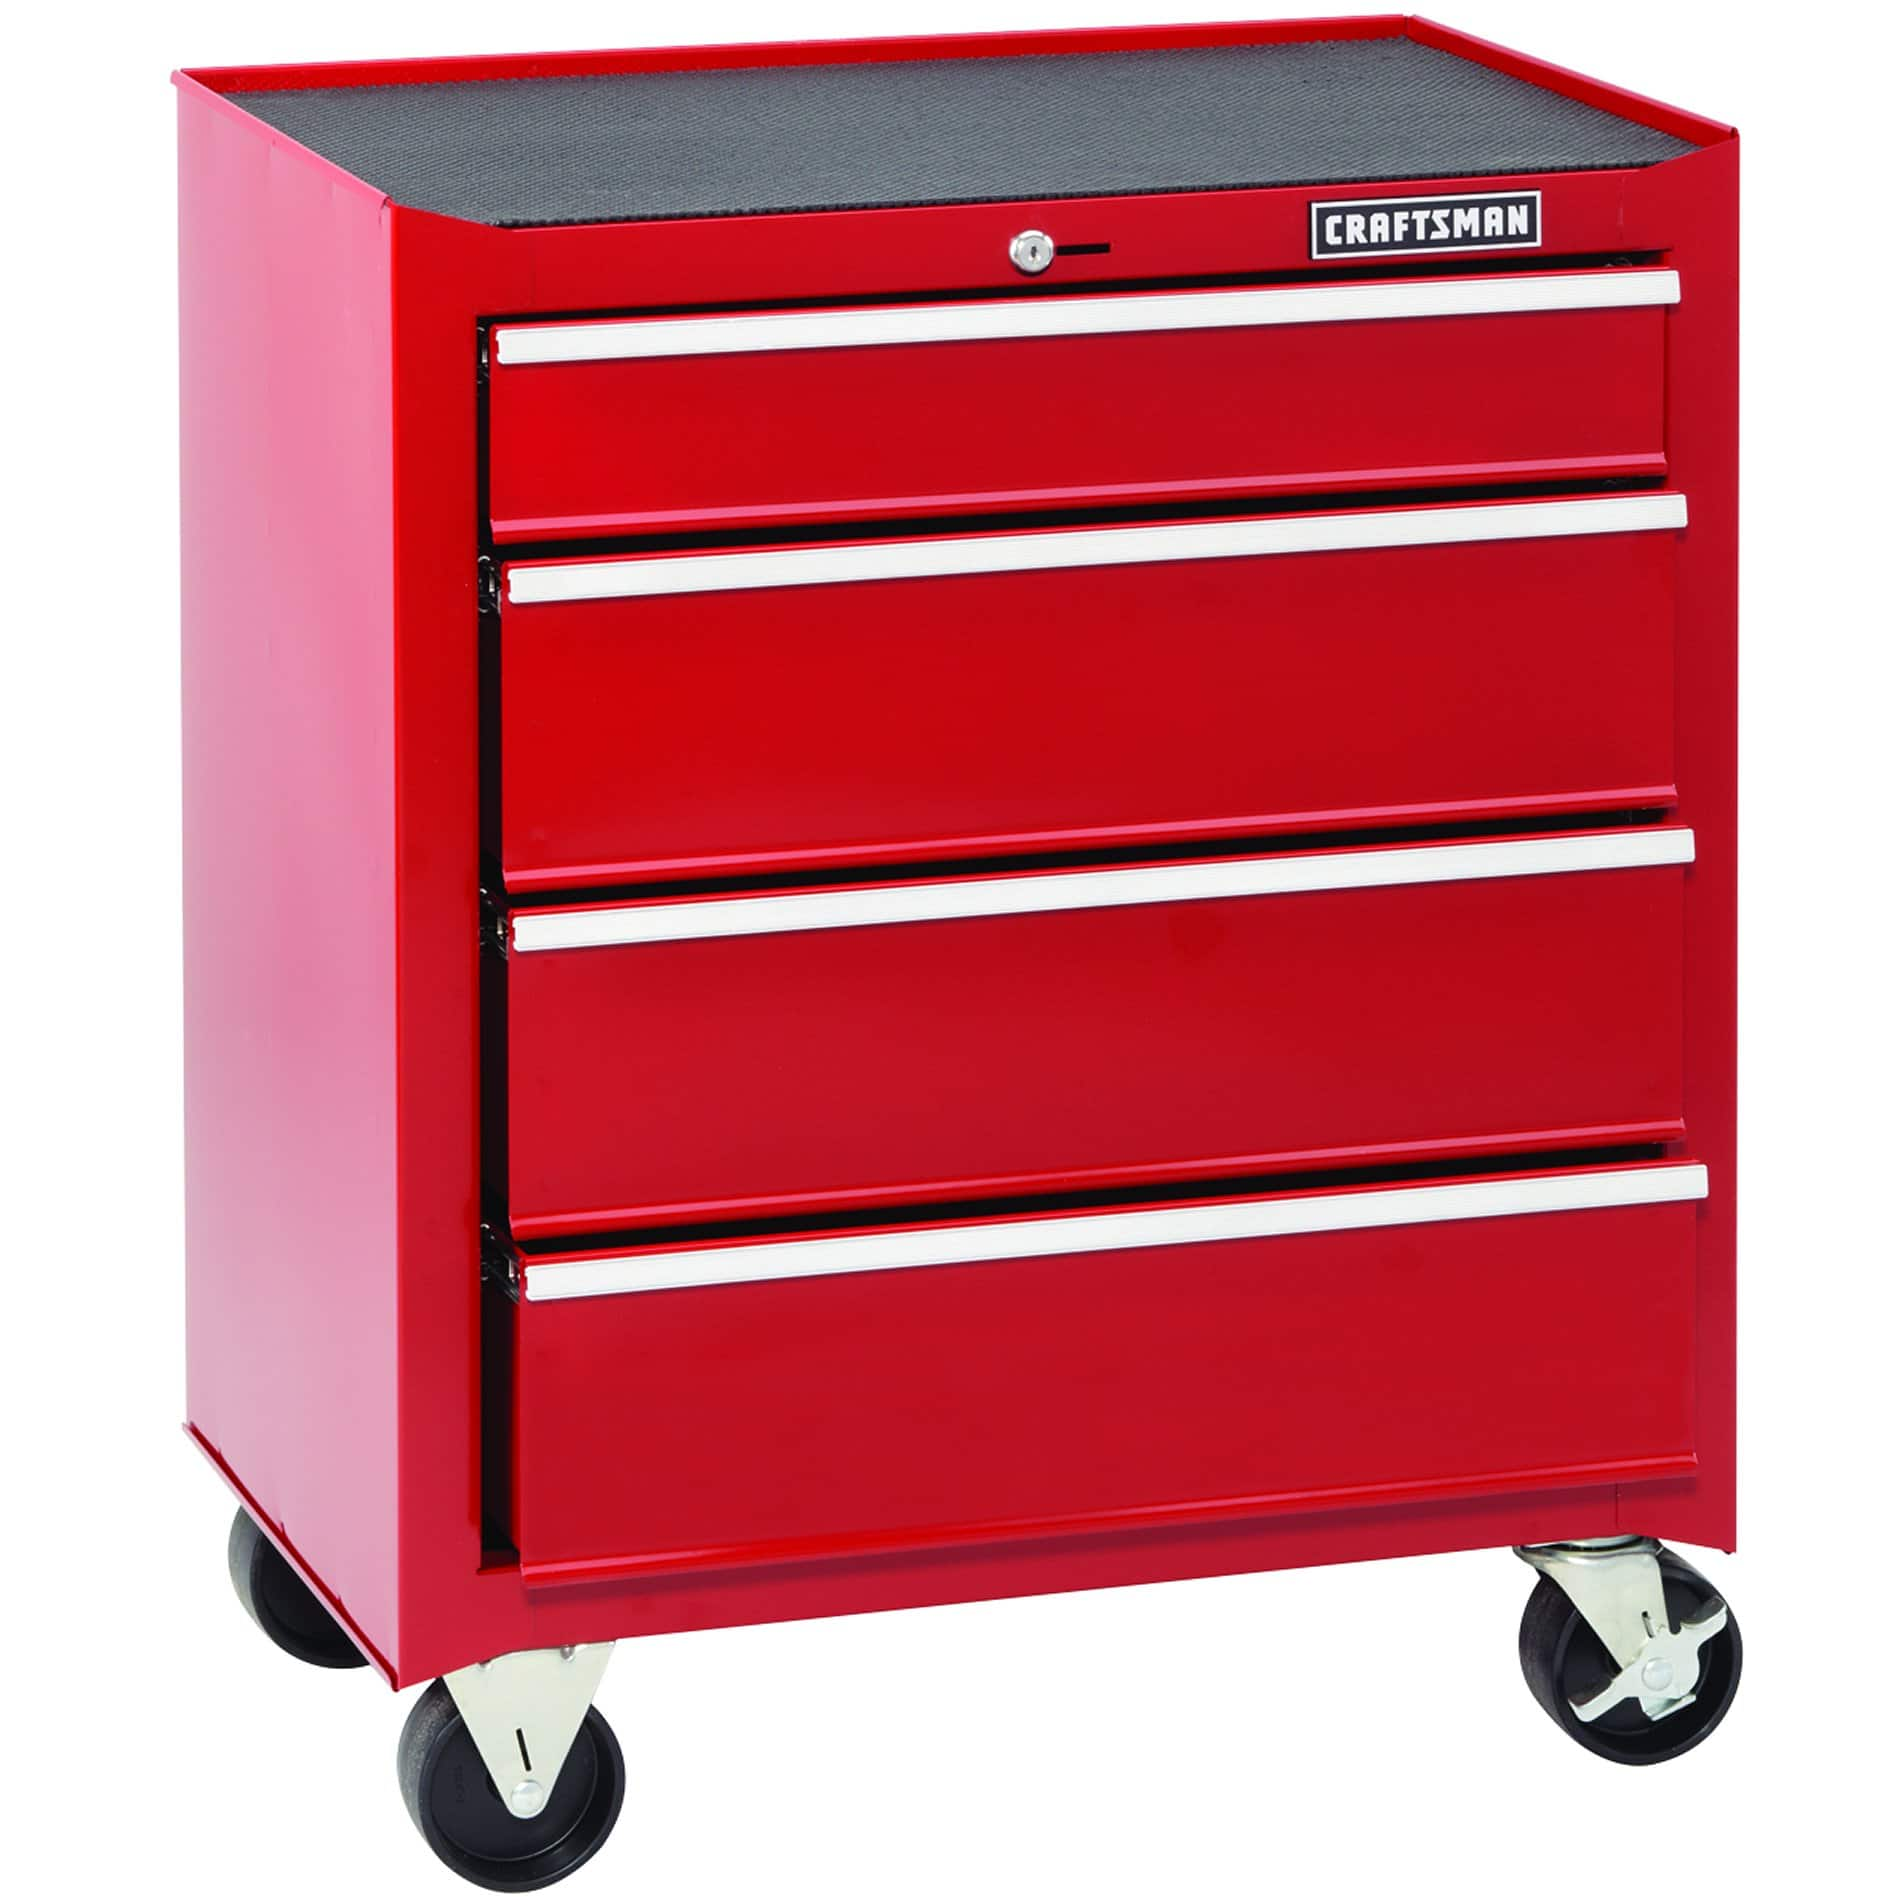 "Craftsman 26"" 4-Drawer Standard-Duty Ball Bearing Rolling Cabinet (Red) $40.99 + Free Store Pickup"